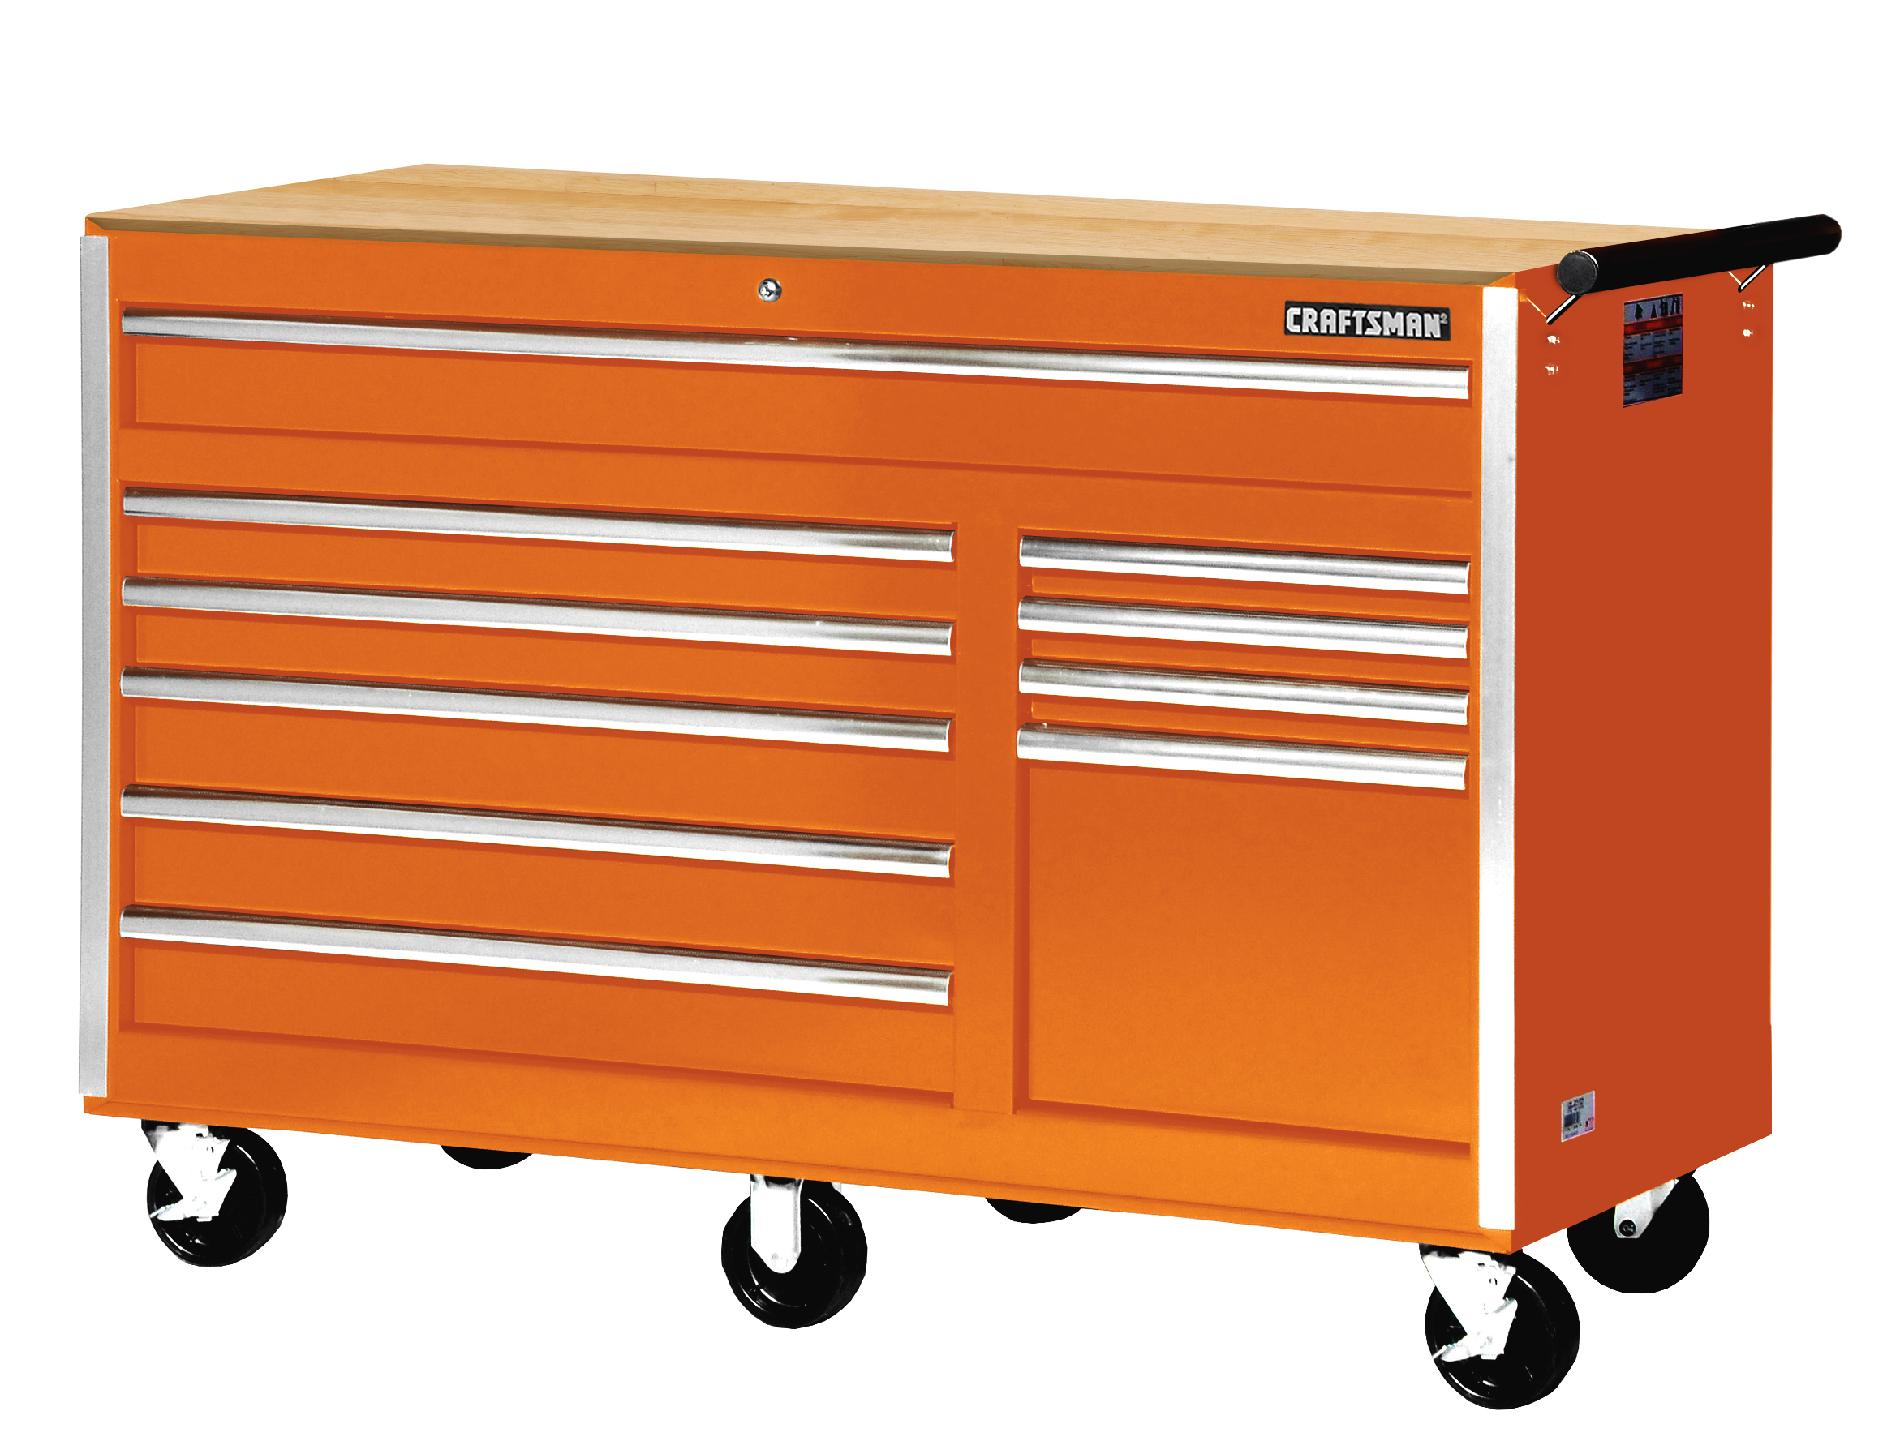 Craftsman 56 in. 10-Drawer Ball Bearing Slides Cabinet With Hard Wood Top, Orange- with Free Shipping